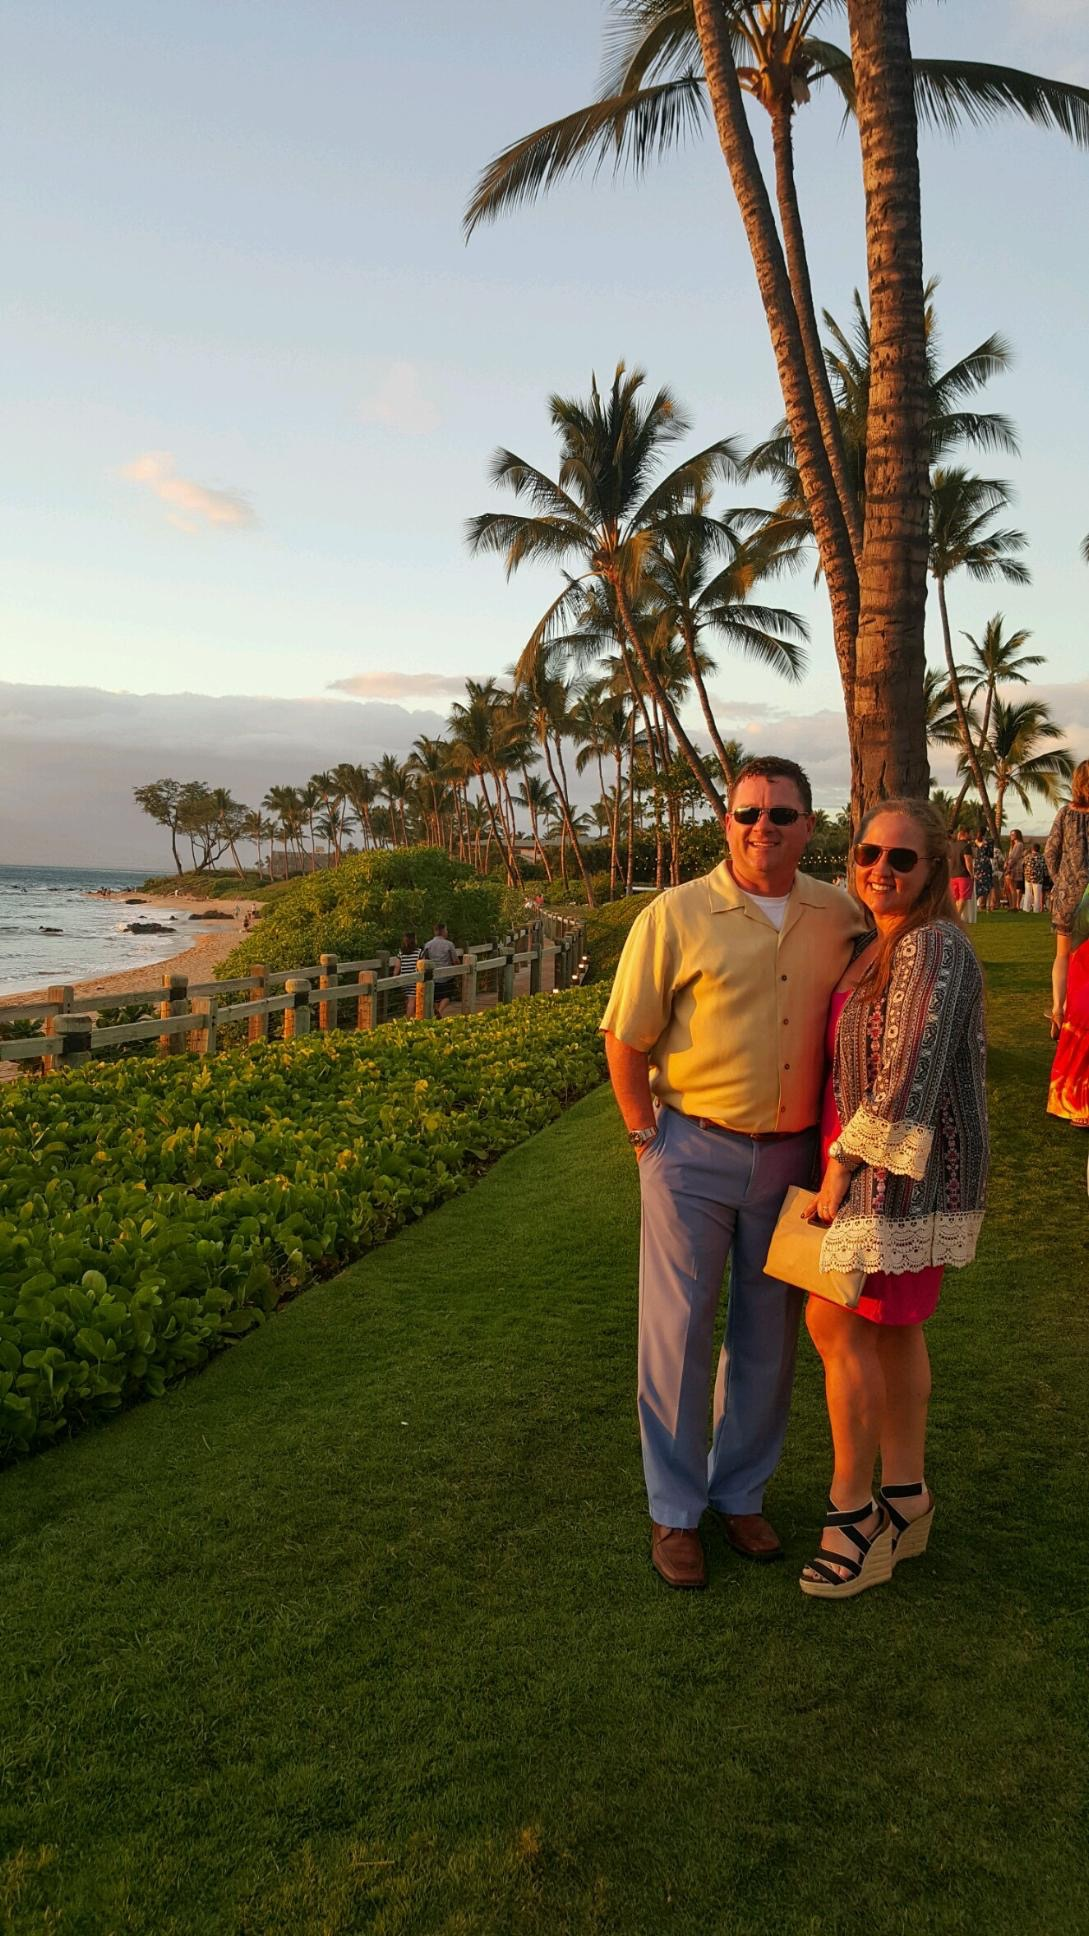 As a Rodan + Fields Independent Consultant, Heather earned a once-in-a-lifetime trip to Hawaii.